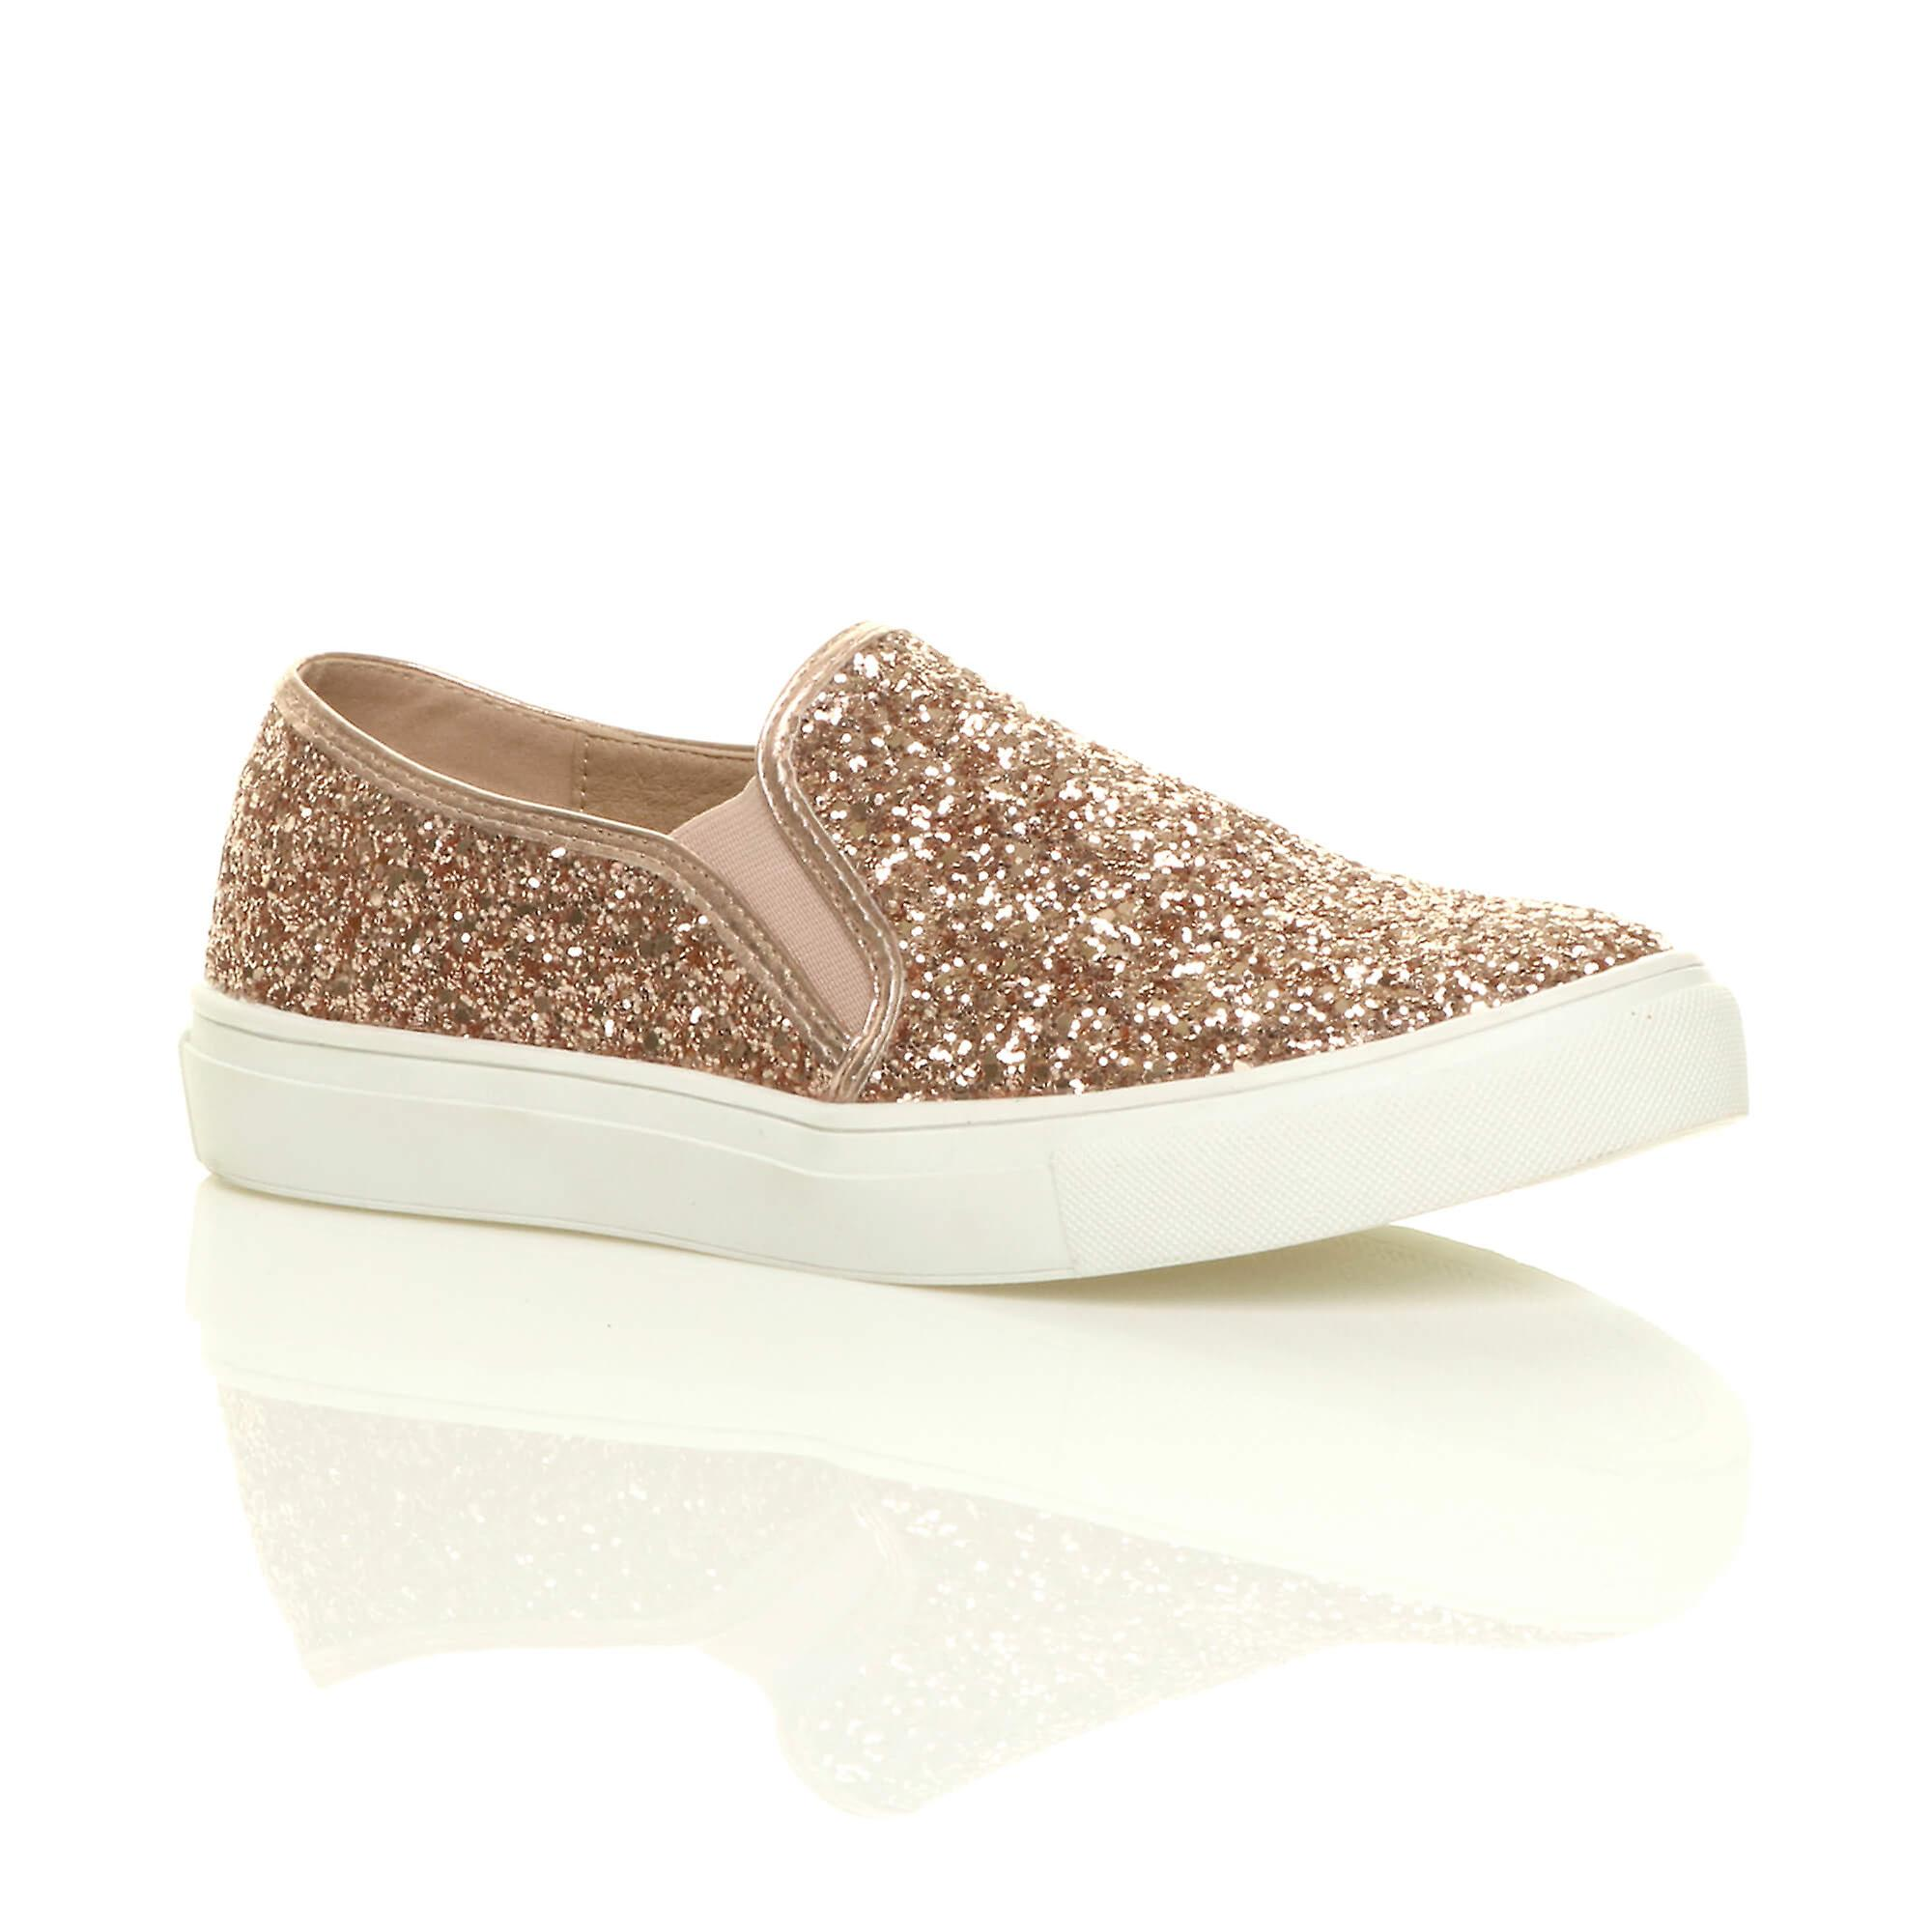 Ajvani womens casual slip on glitter plimsolls trainers skater shoes sneakers